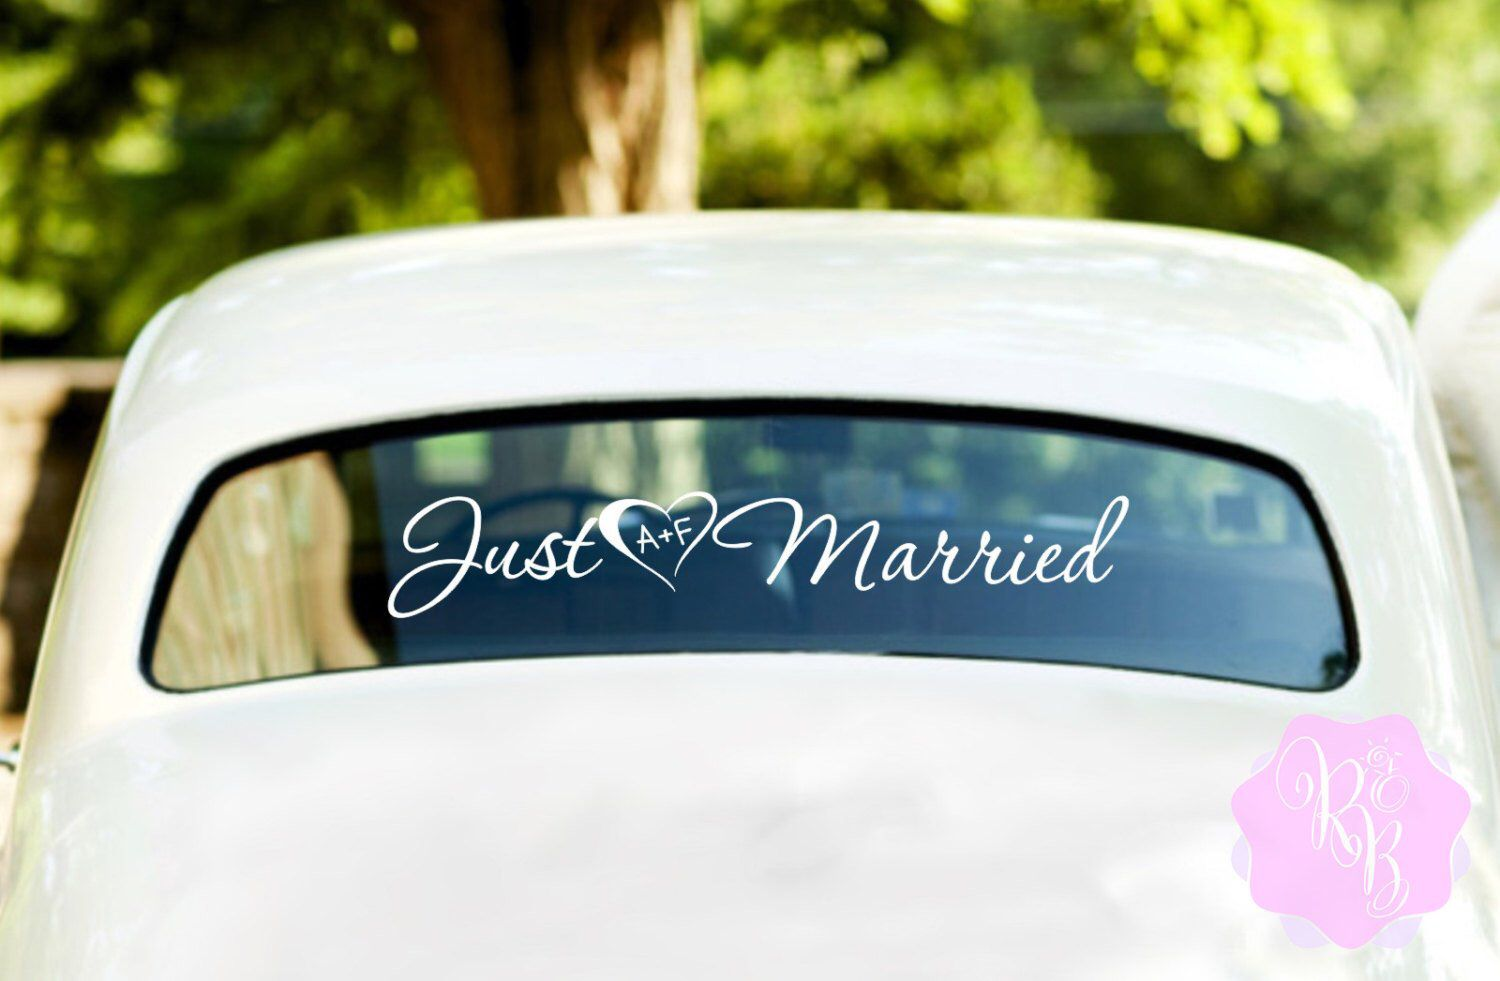 Wedding decorations on cars  Just Married Heart And Initials Wedding Car Window Decal Multiple